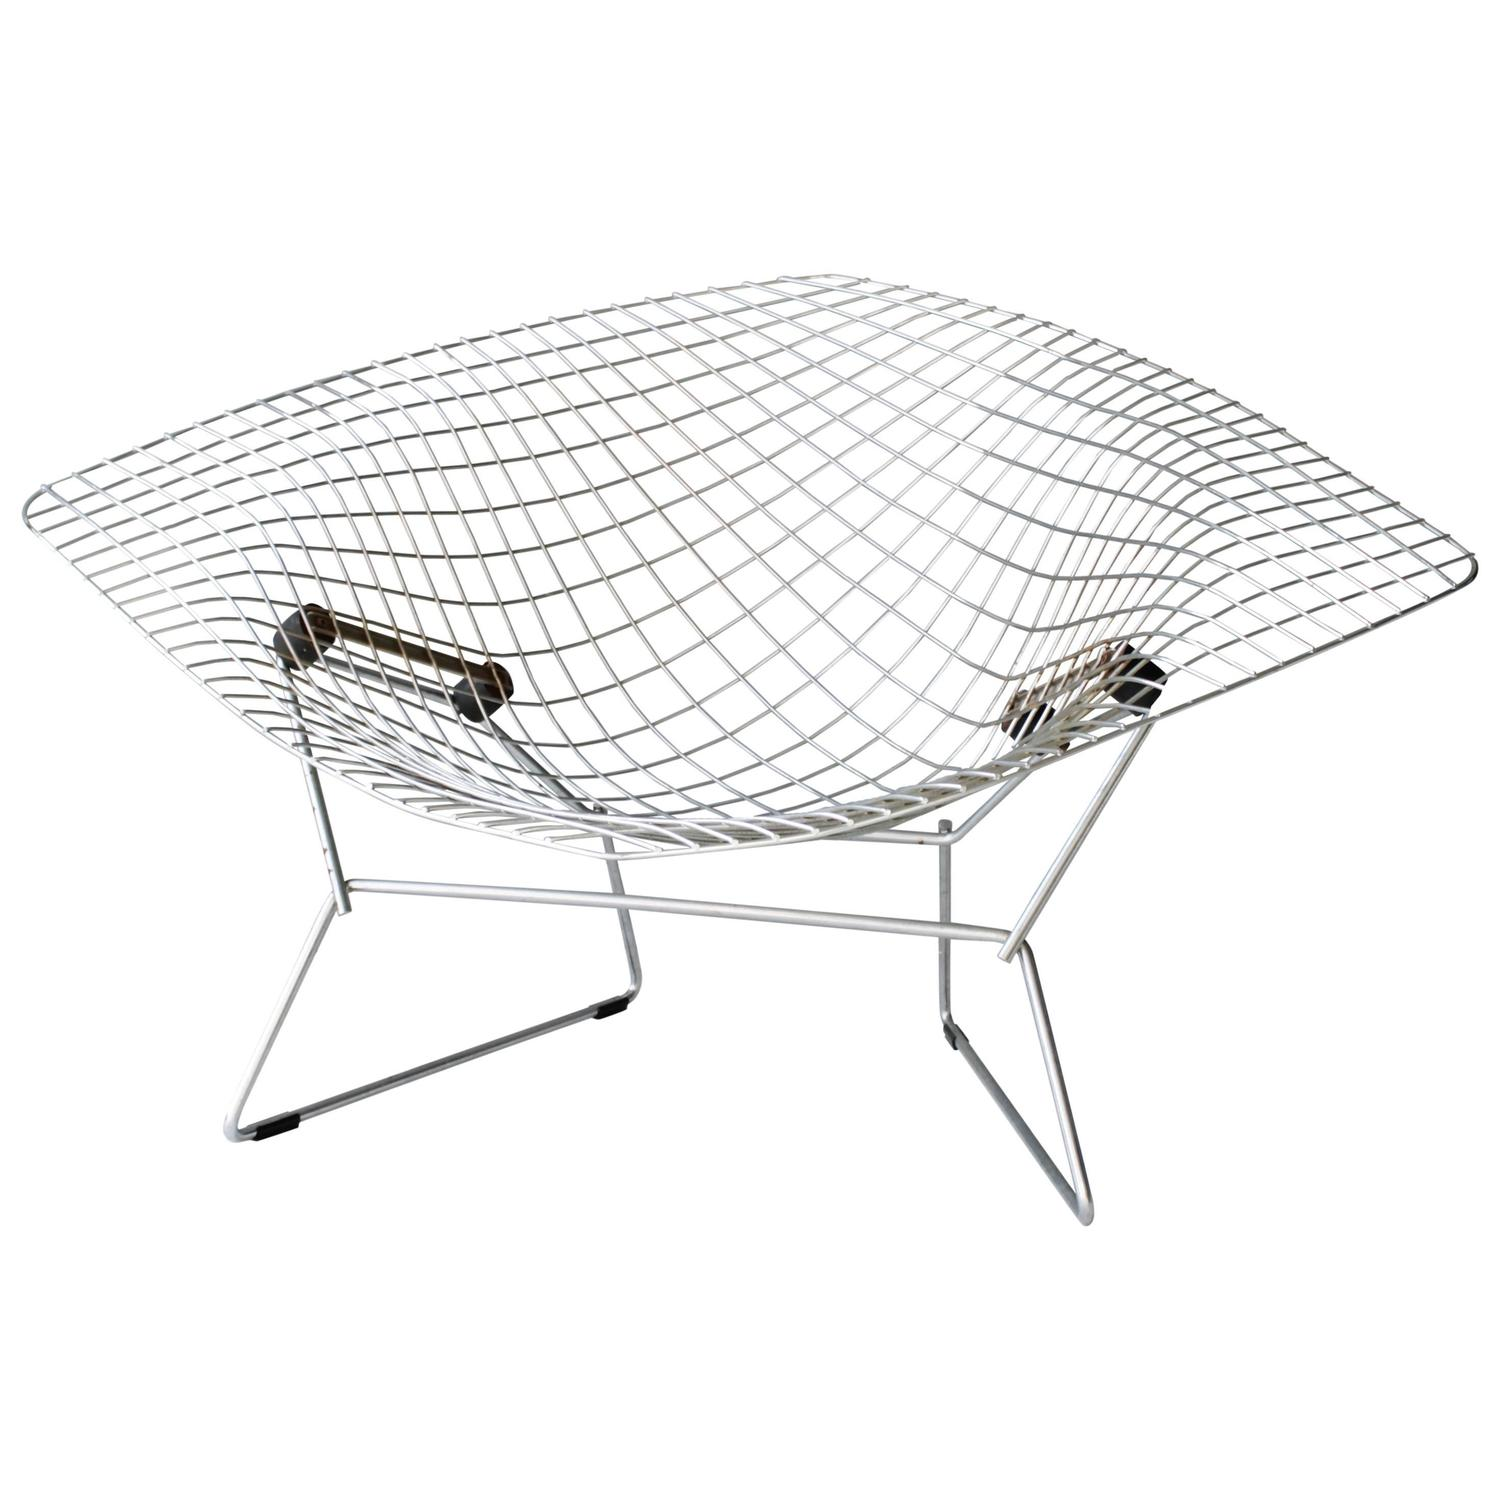 Bertoia diamond chair dimensions - Bertoia Diamond Chair Dimensions 8